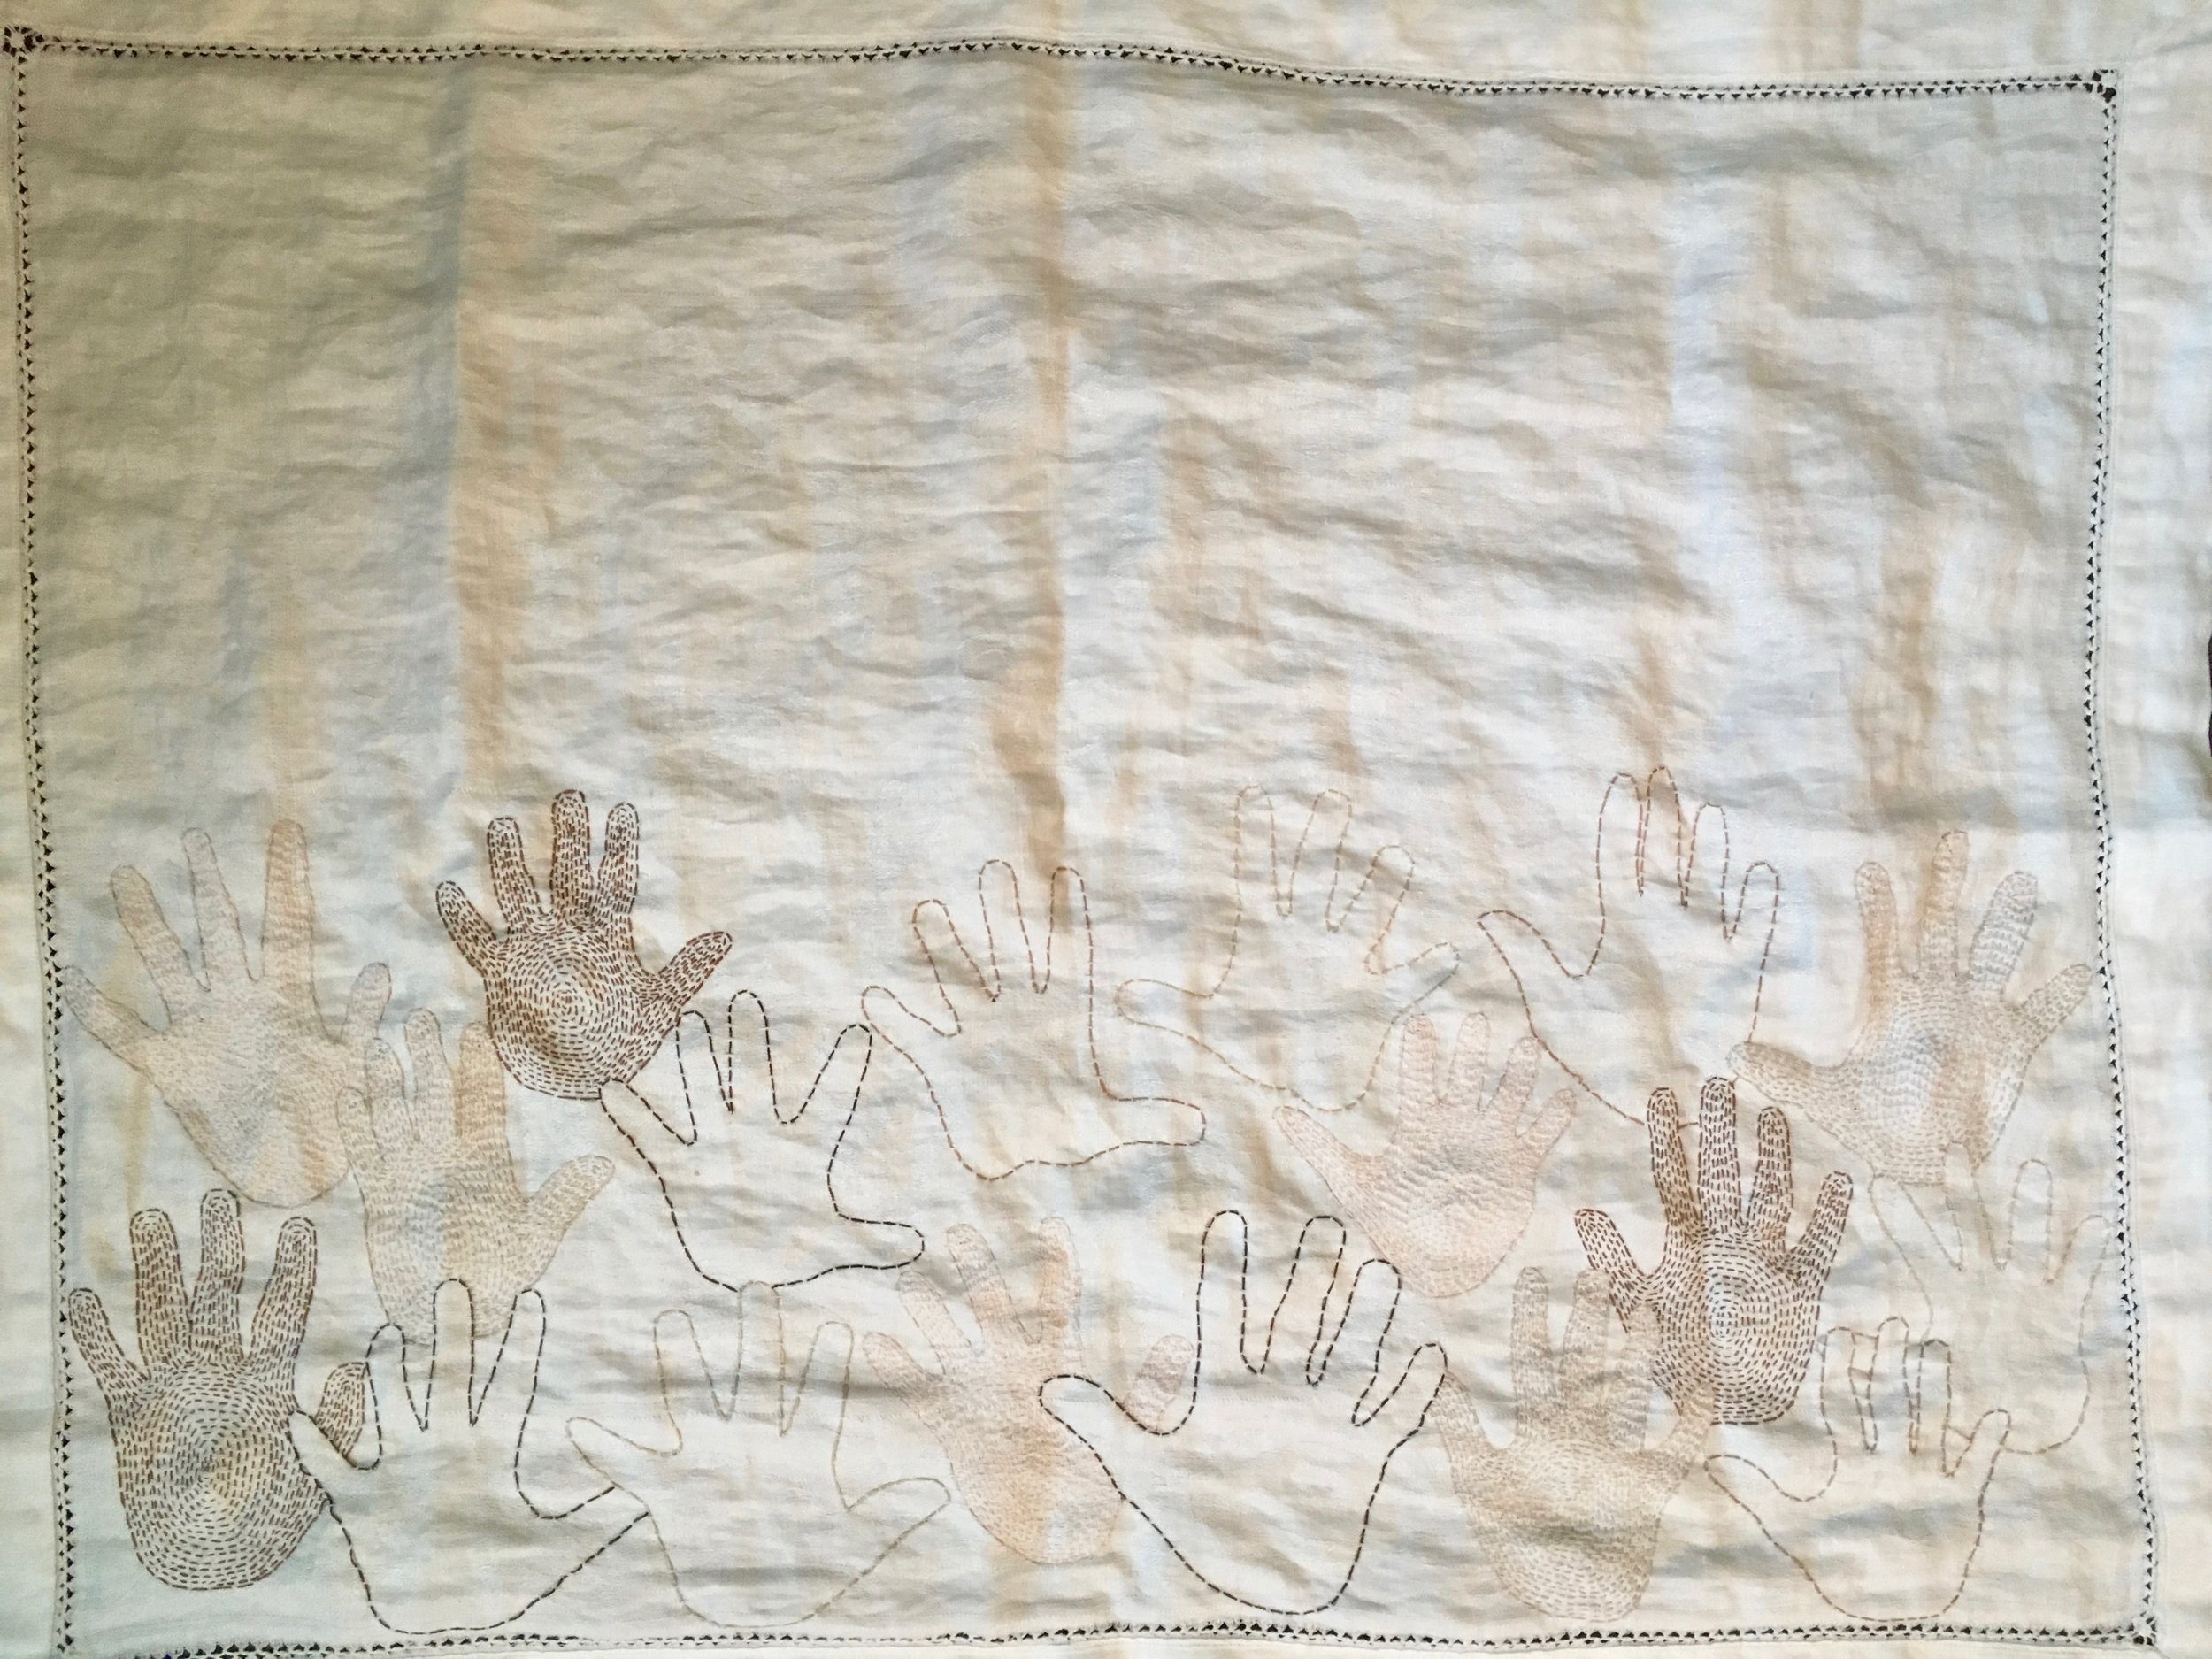 The big picture: hands half done